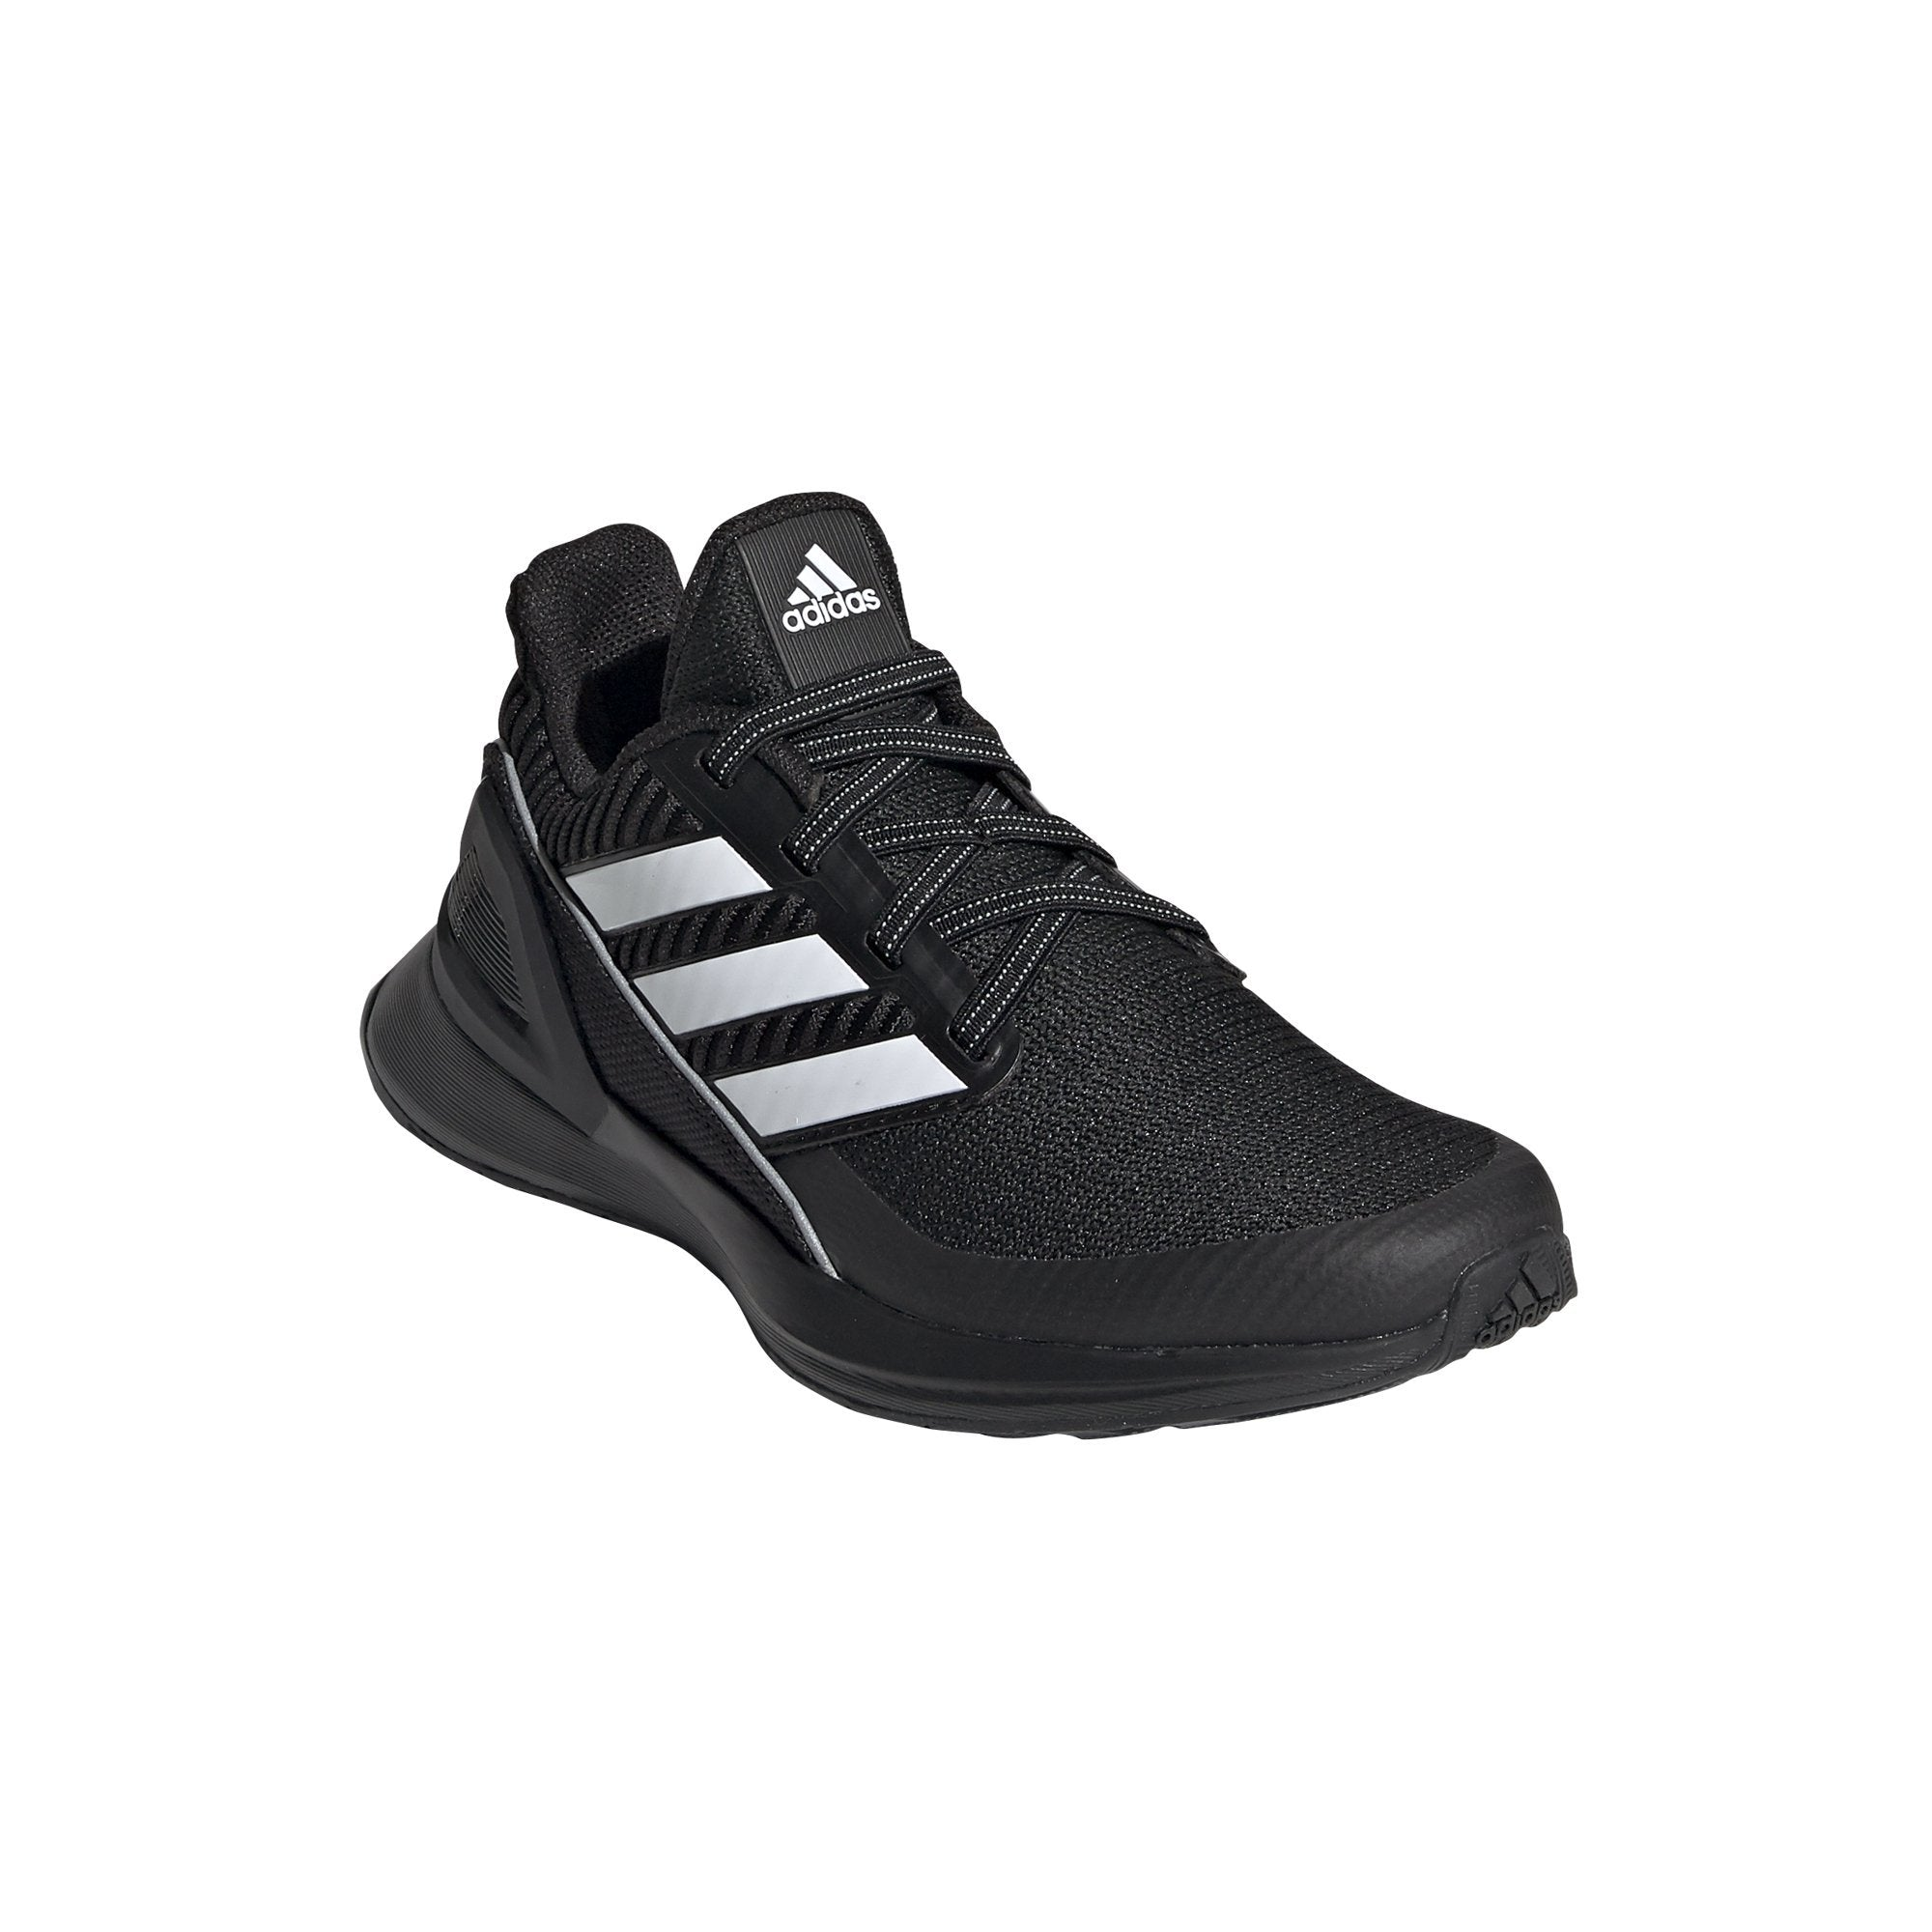 Adidas Kids RapidaRun Shoes - core black/ftwr white/core black SP-FOOTWEAR-KIDS Adidas